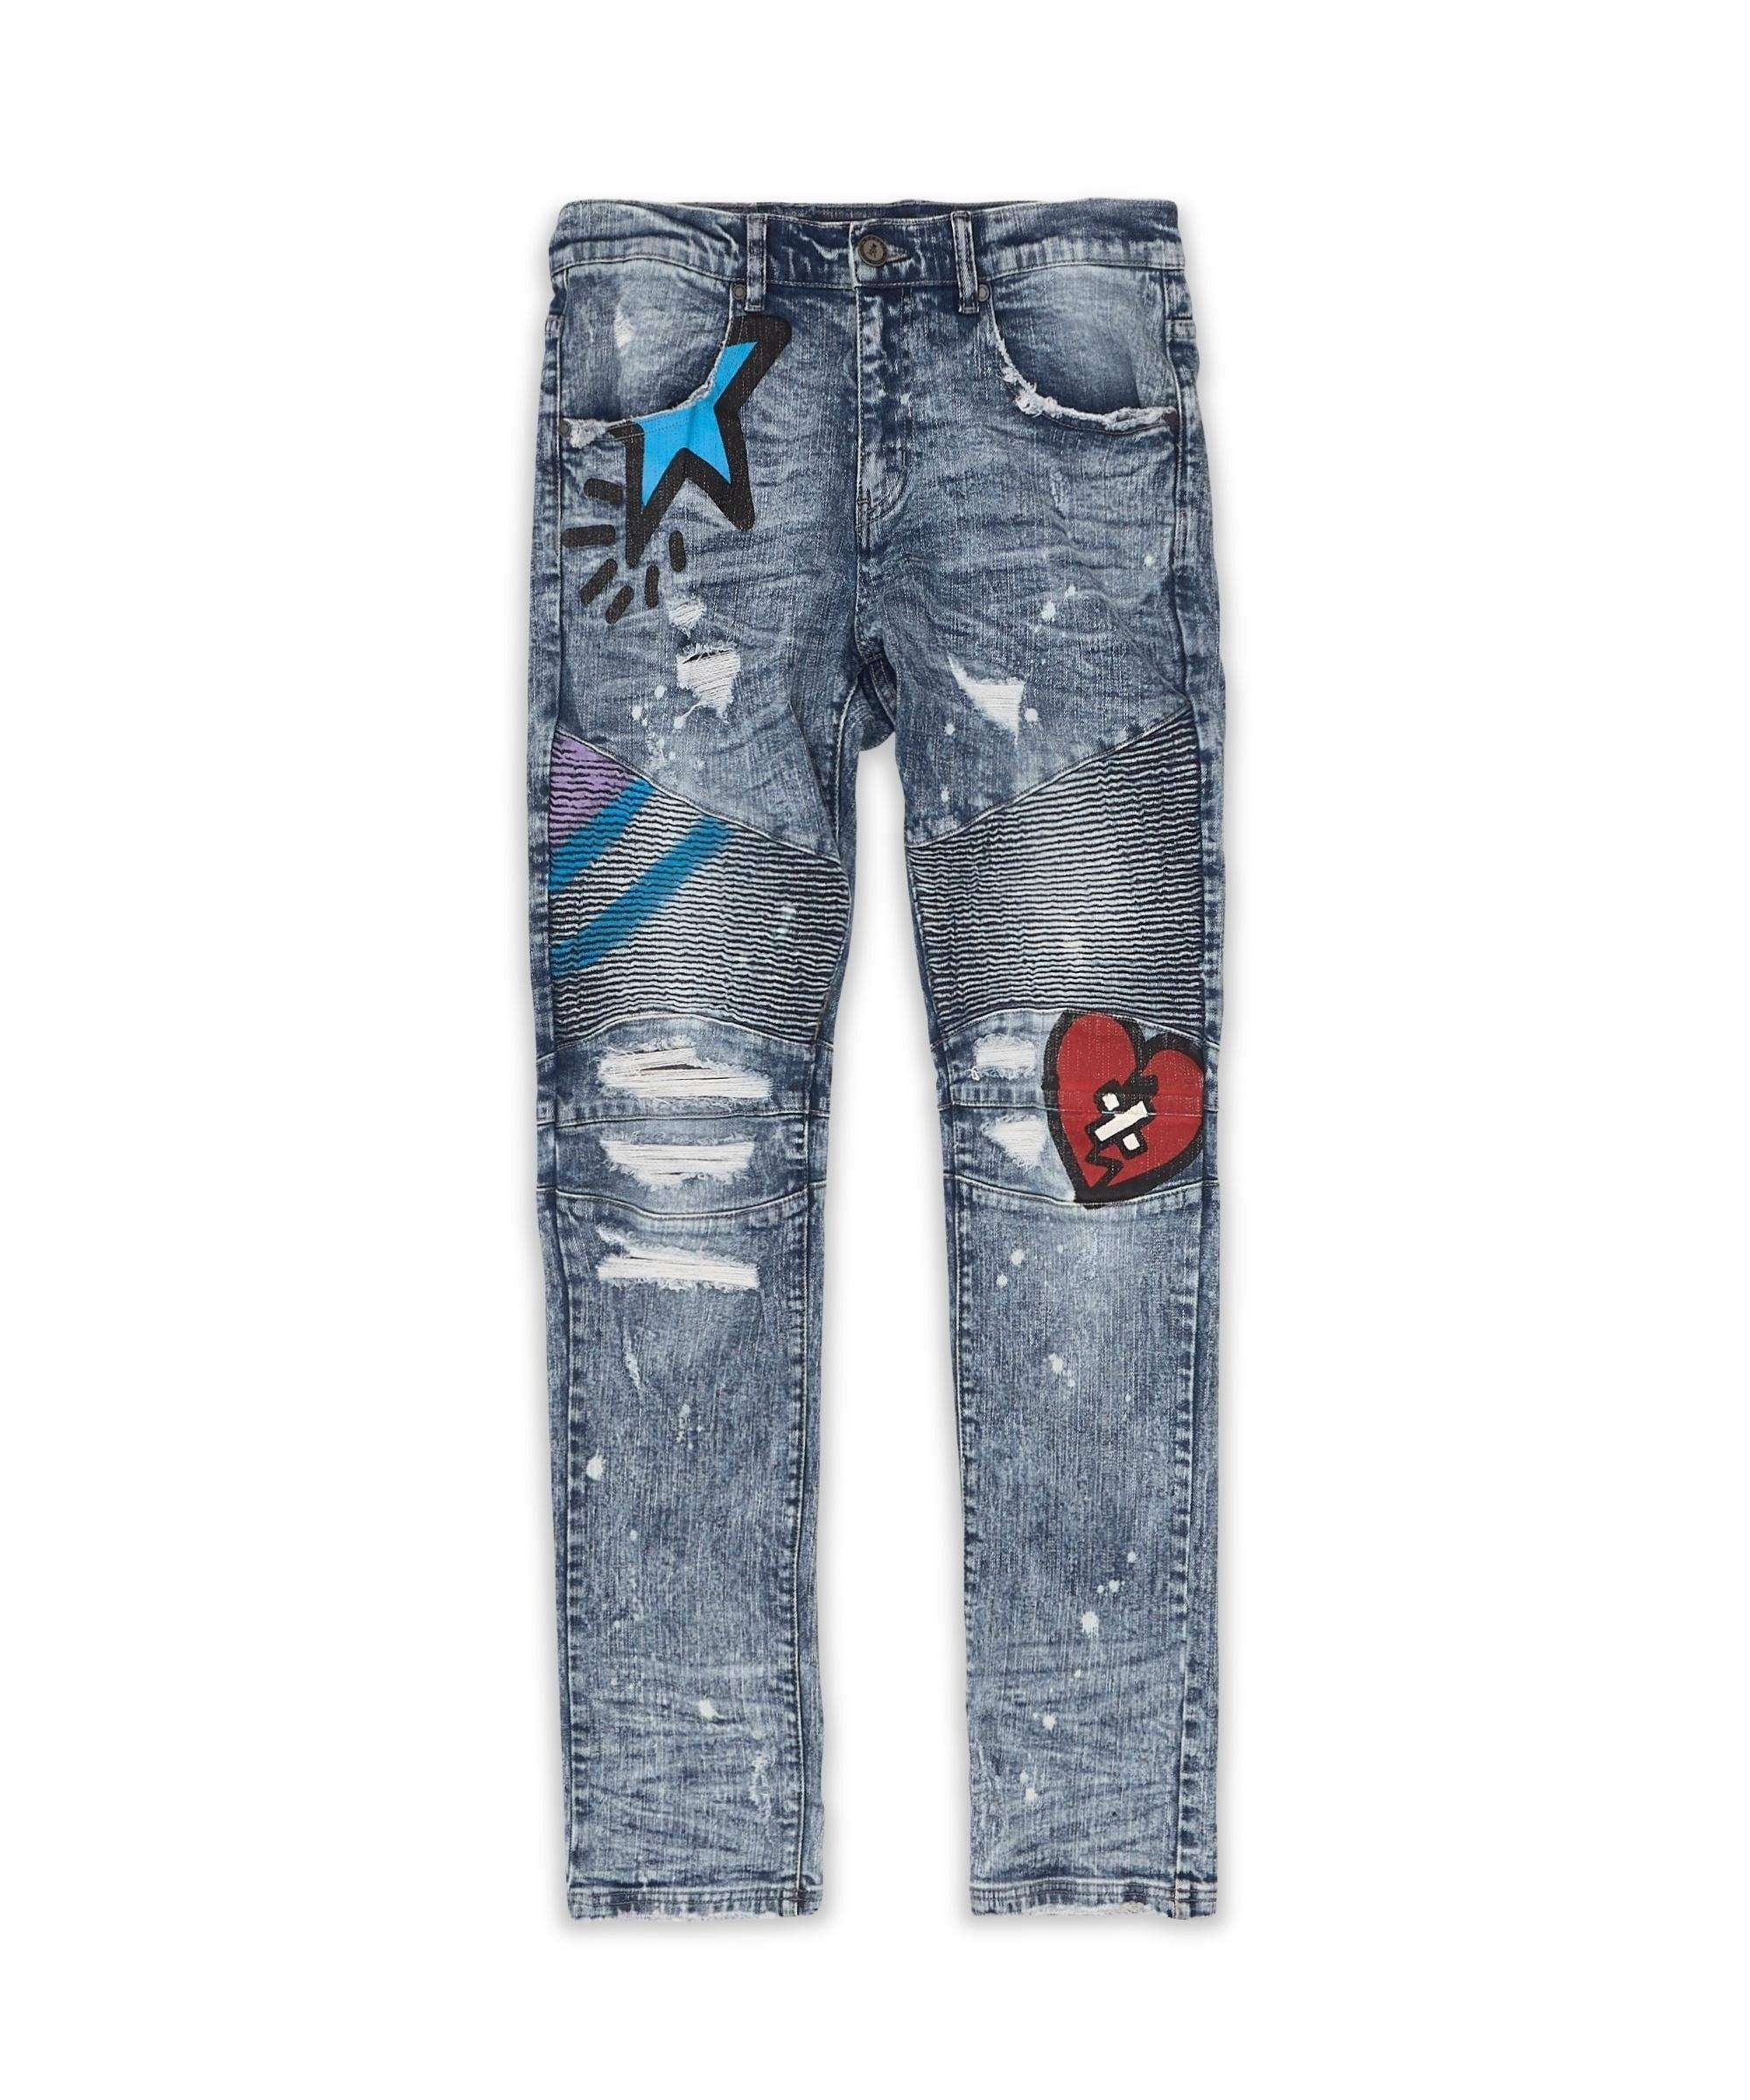 ALICE DENIM JEANS Reason Clothing